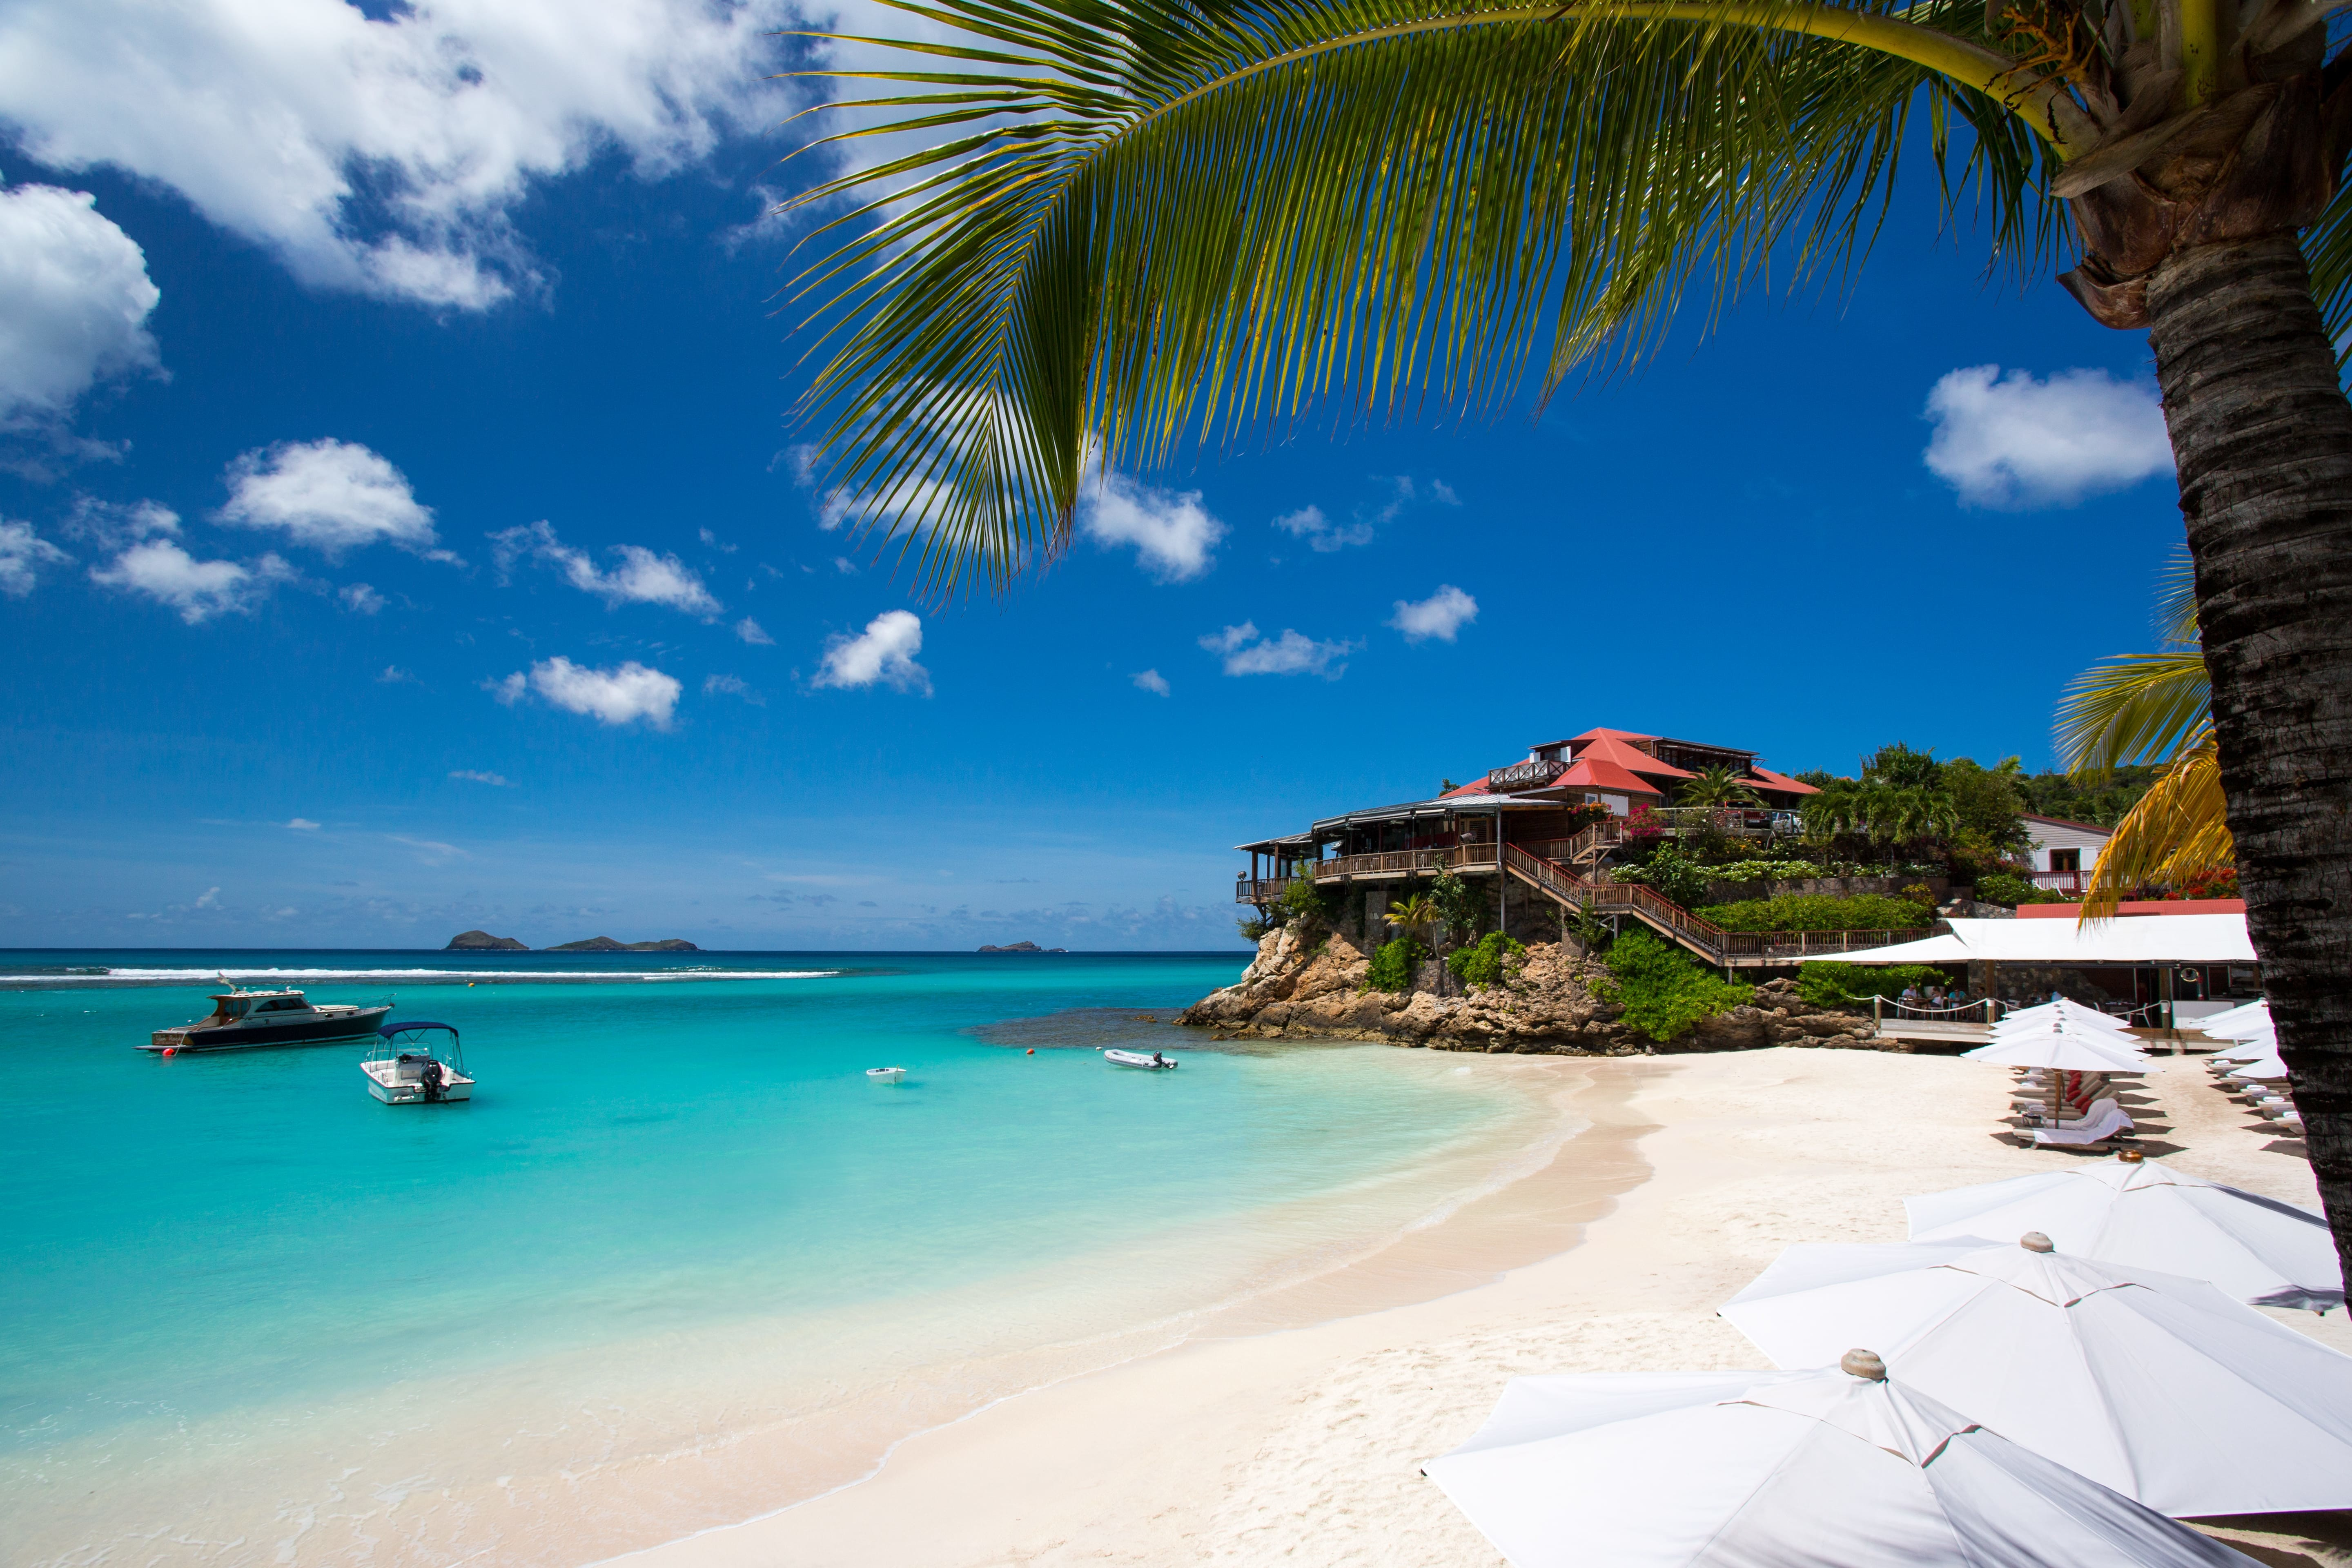 eden-rock-saint-barths-eden-rock-beach-9146-min